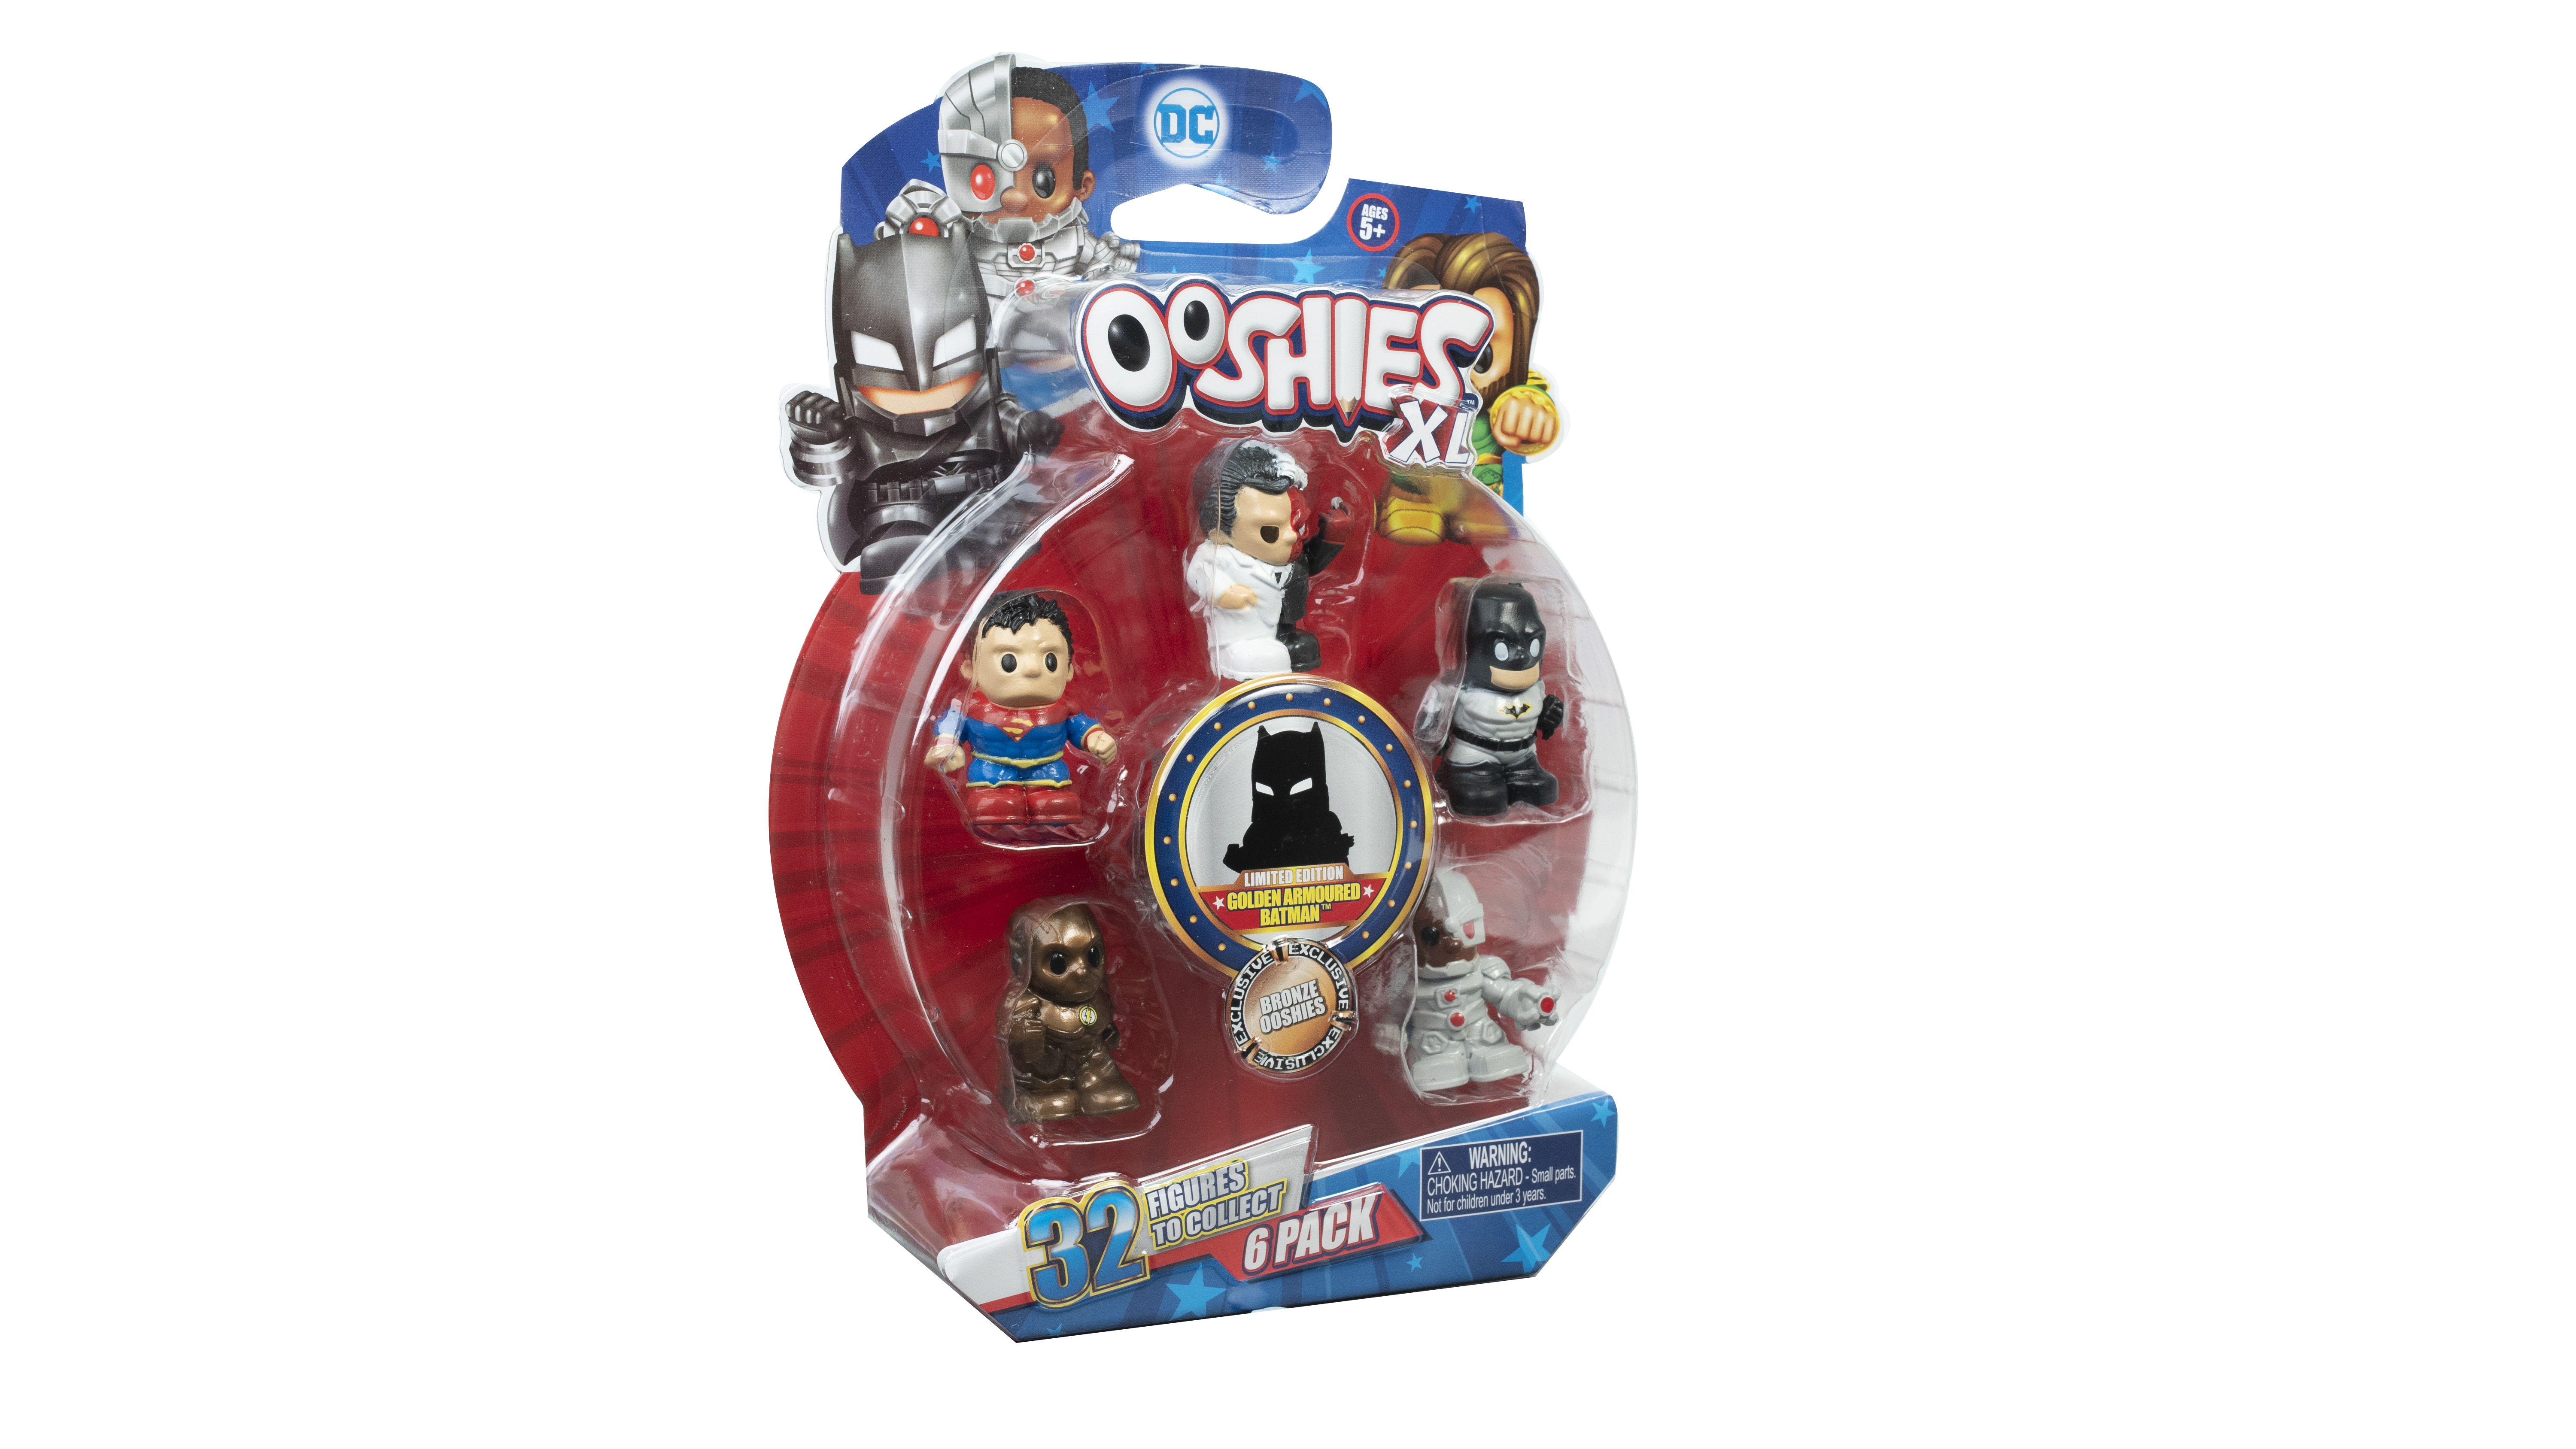 """DC Ooshies XL - 6 Pack- Superboy, New Outfit Batman, Bronze The Flash, Cyborg, Two face & """"One Surprise"""" Ooshie"""